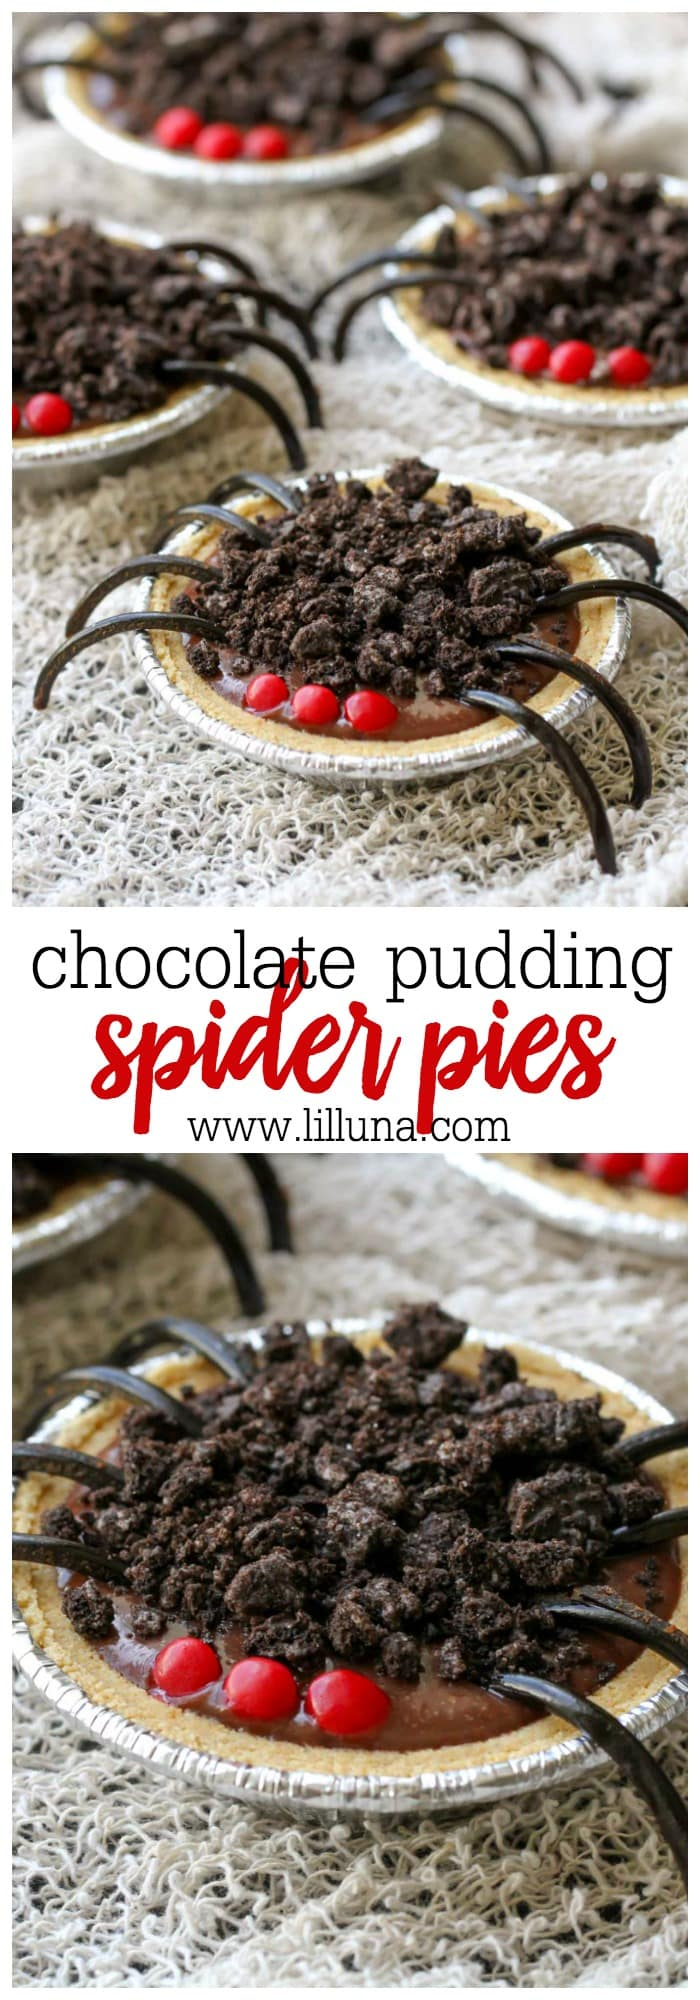 Chocolate Pudding Pie Spiders